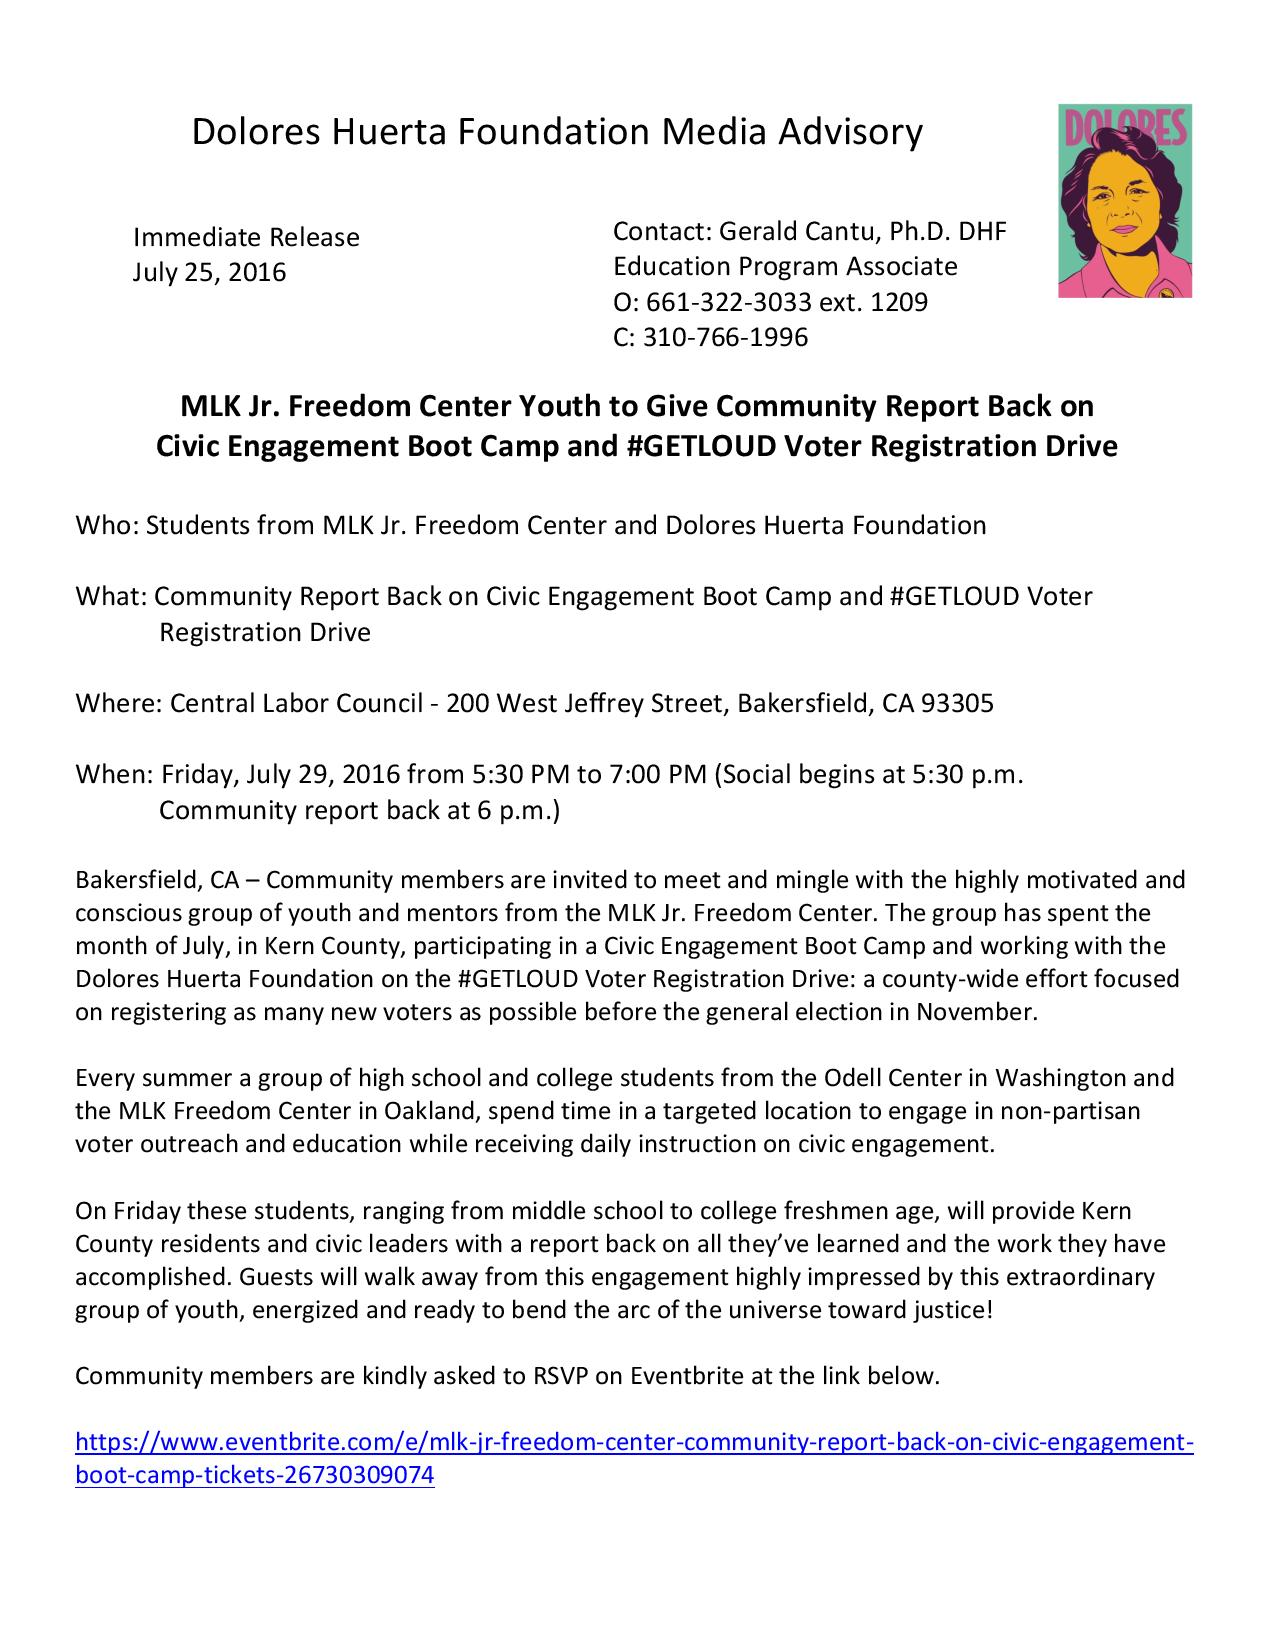 media-advisory-mlk-jr-freedom-center-youth-community-report-back-7-29-16-page-001